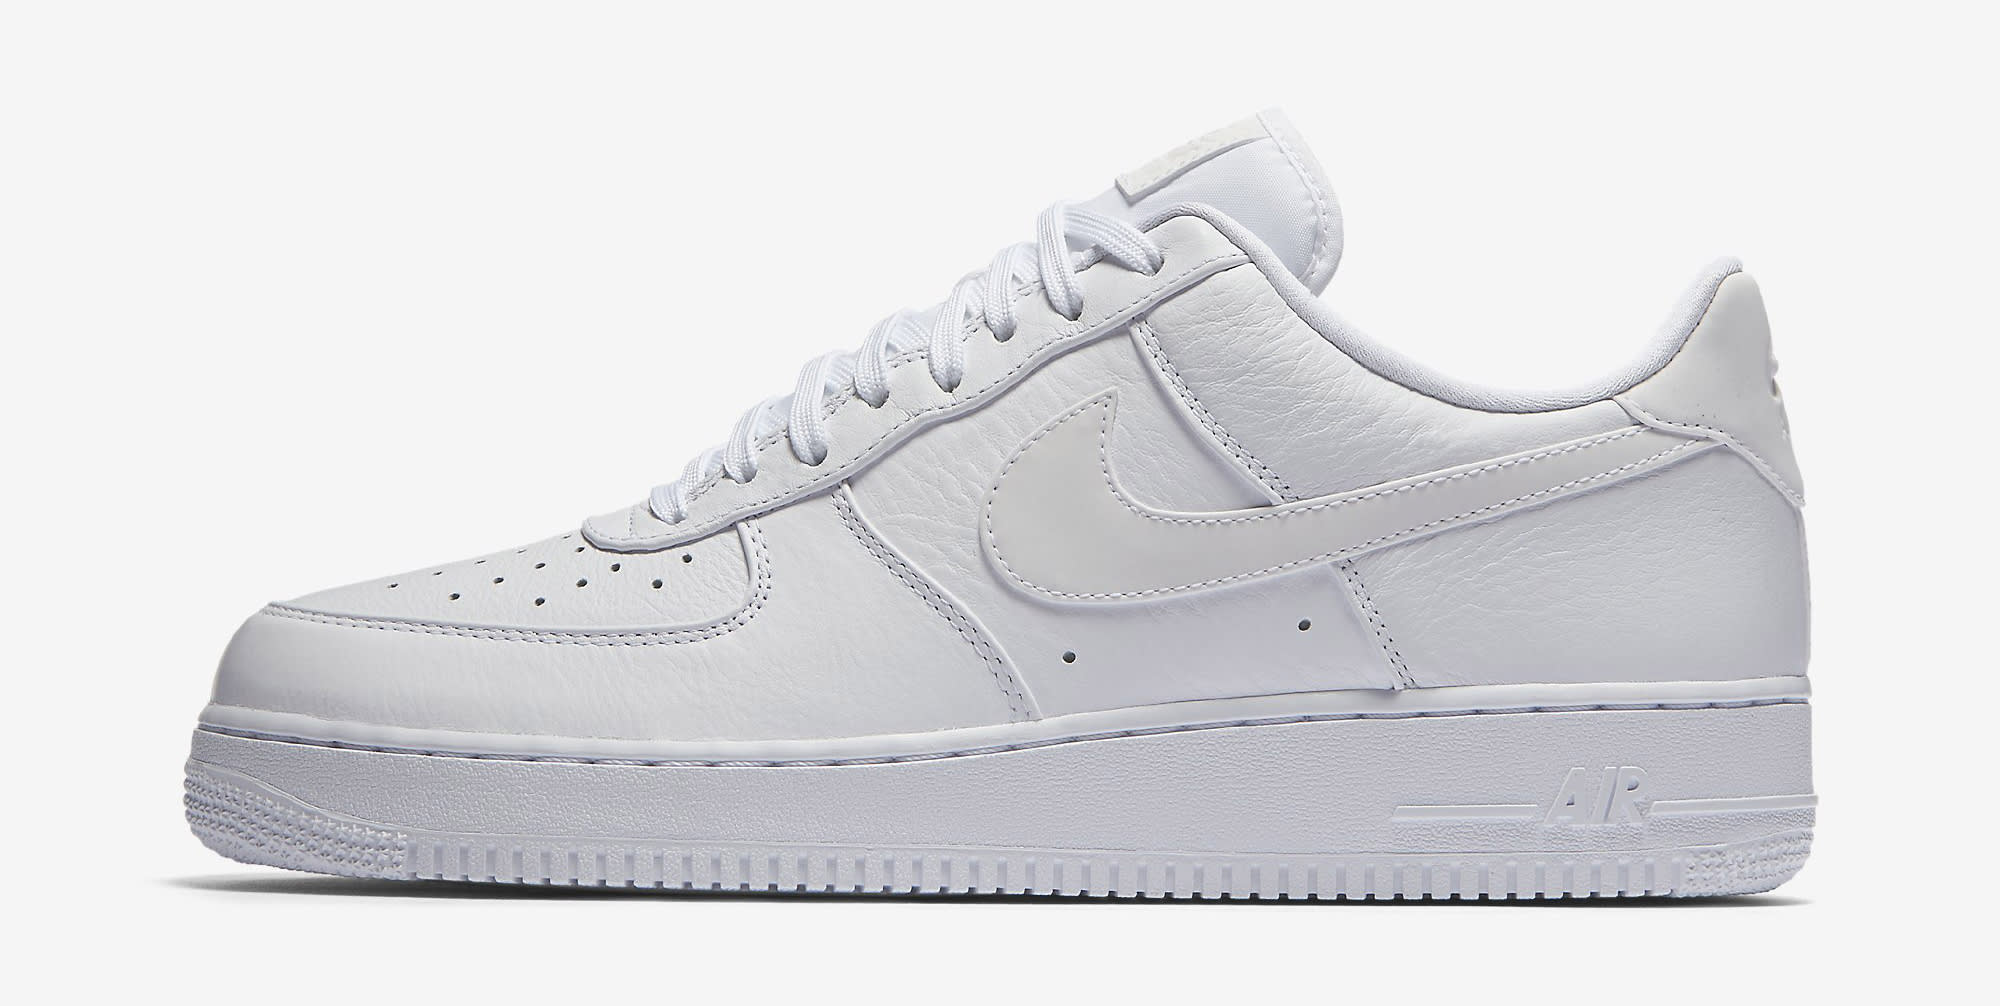 Nike Air Force 1 Low White Reflective 905345-100 | Sole ...